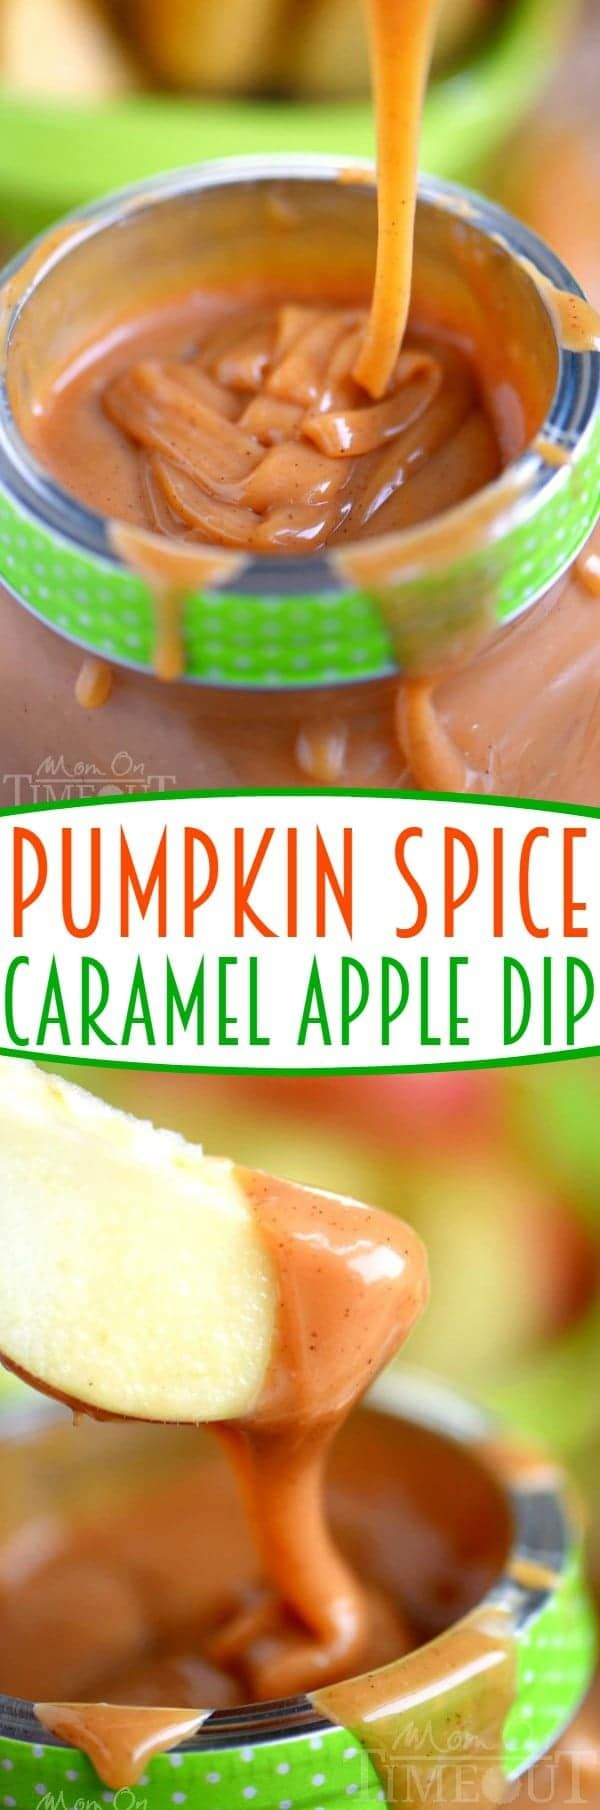 This easy Pumpkin Spice Caramel Apple Dip is sure to be the star at your next party! So easy to make and just bursting with fall flavor! Great for a fruit dip or as an ice cream topping! // Mom On Timeout